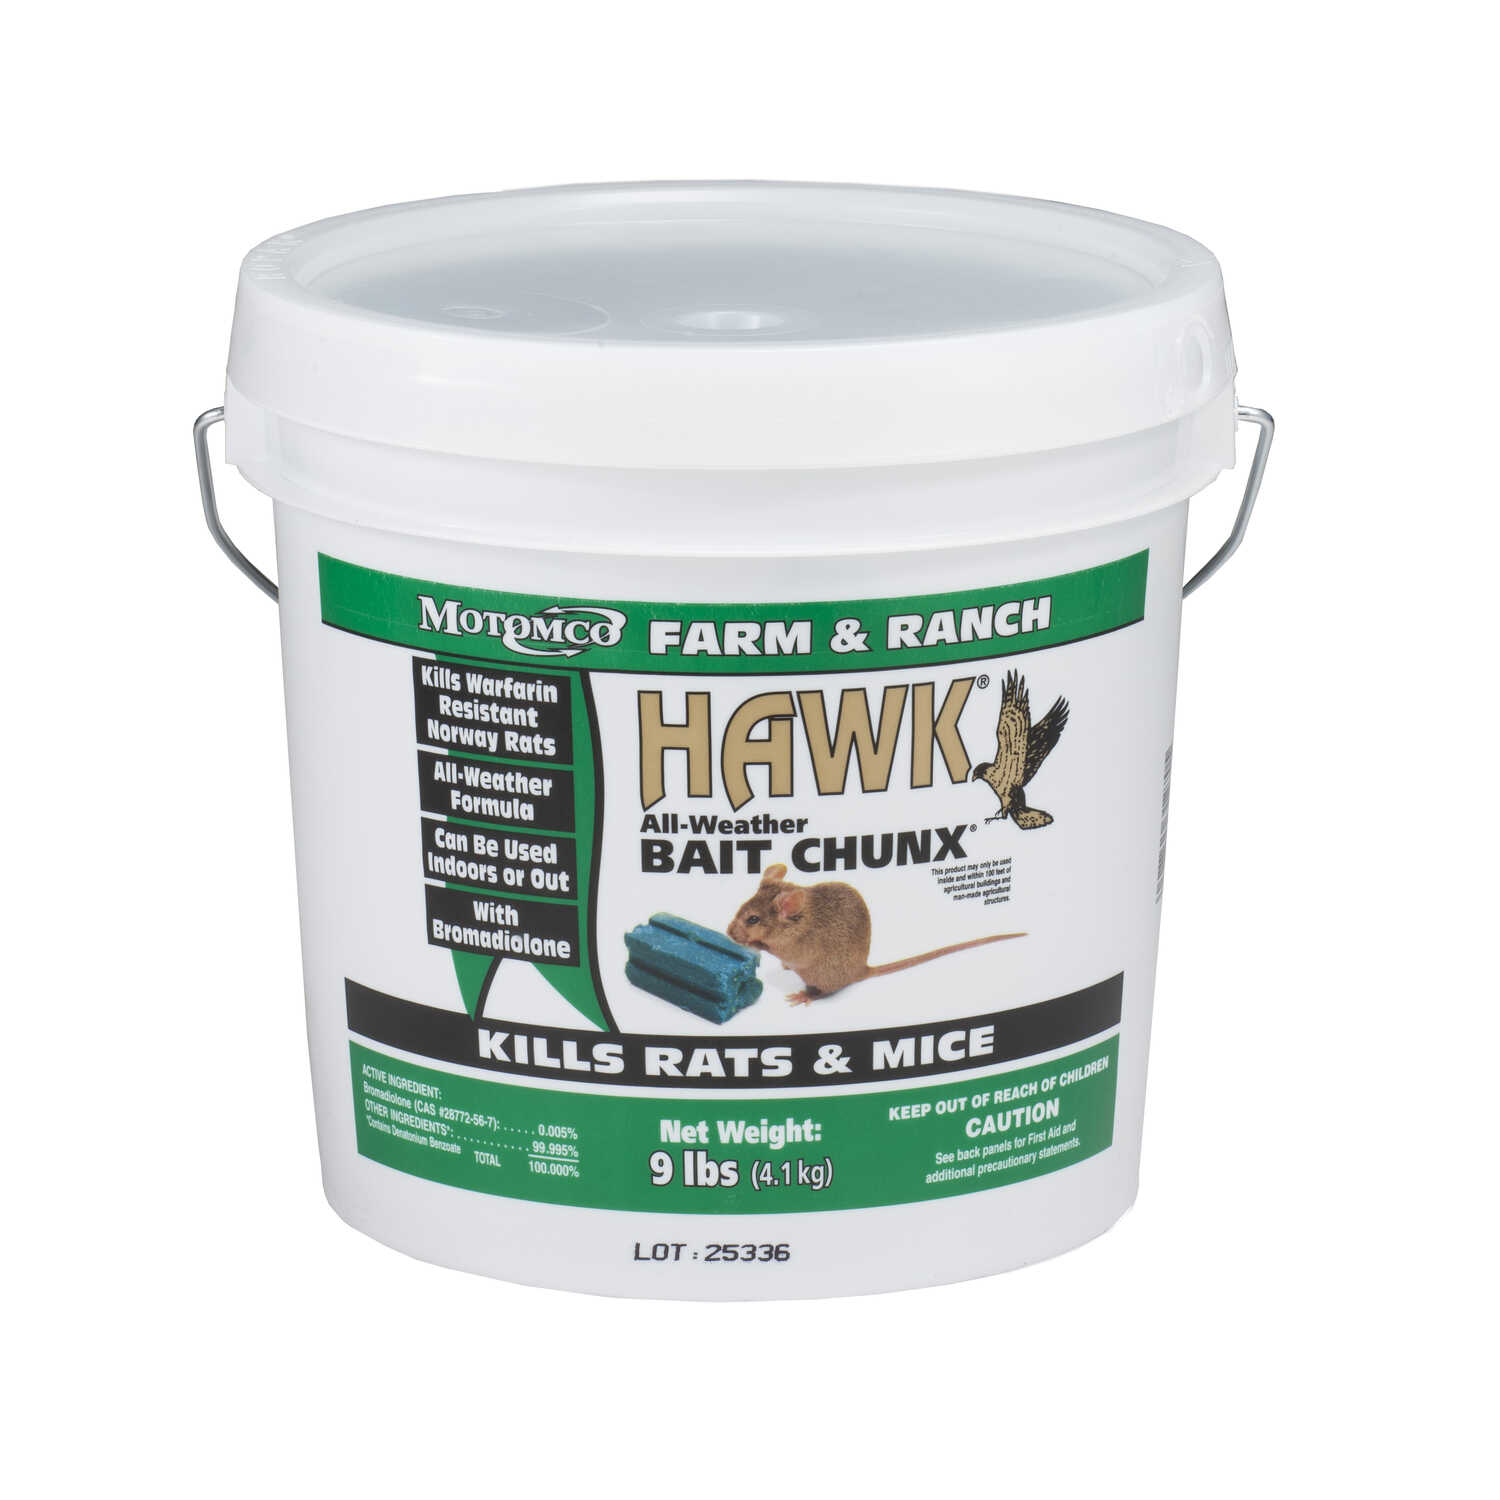 Motomco  Hawk  For Mice and Rats Bait  9